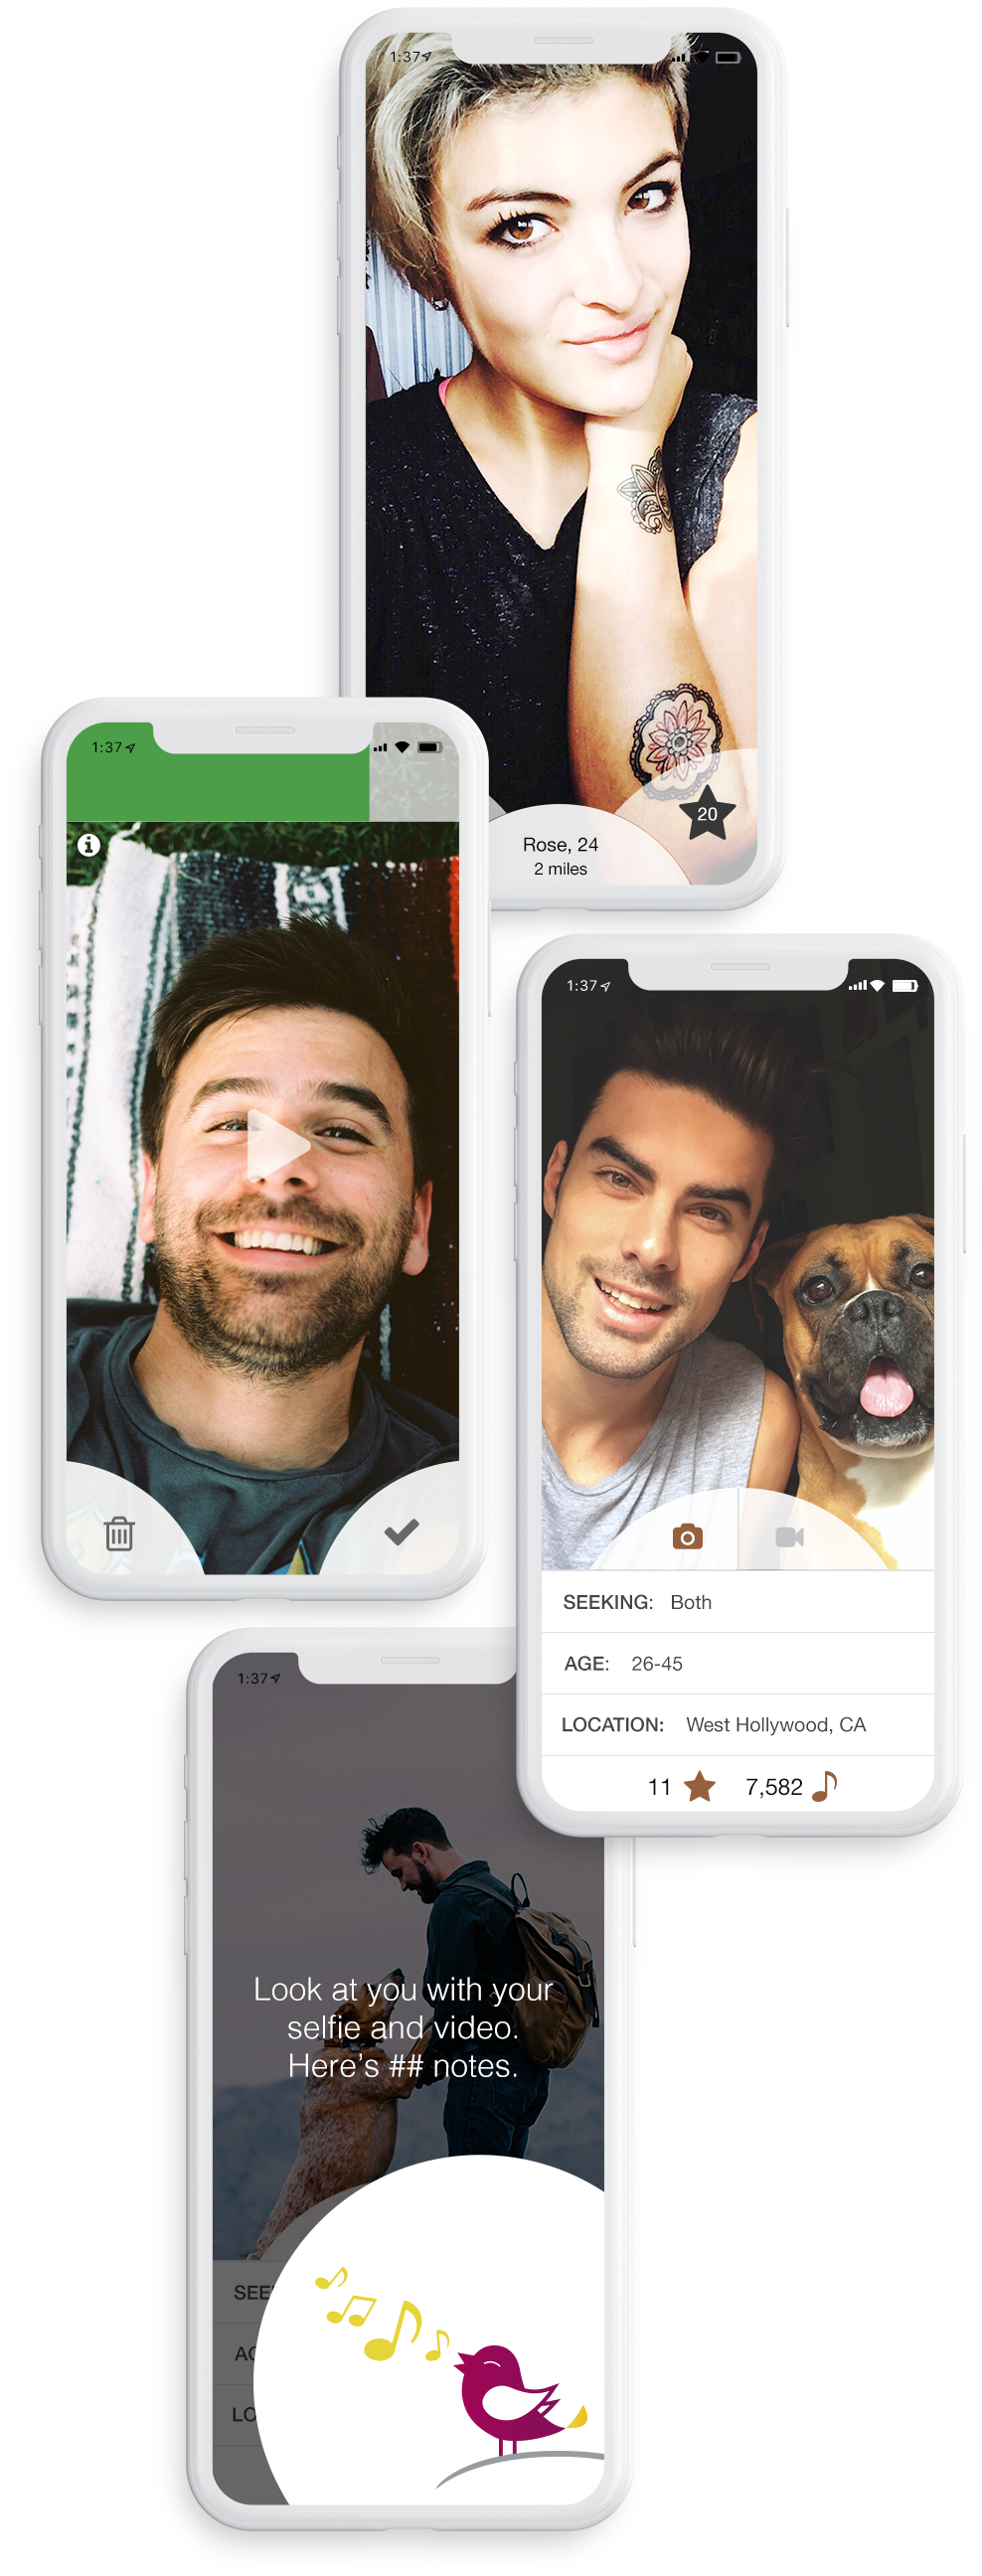 iPhones feature diverse functionality of Zazazu's new mobile app design